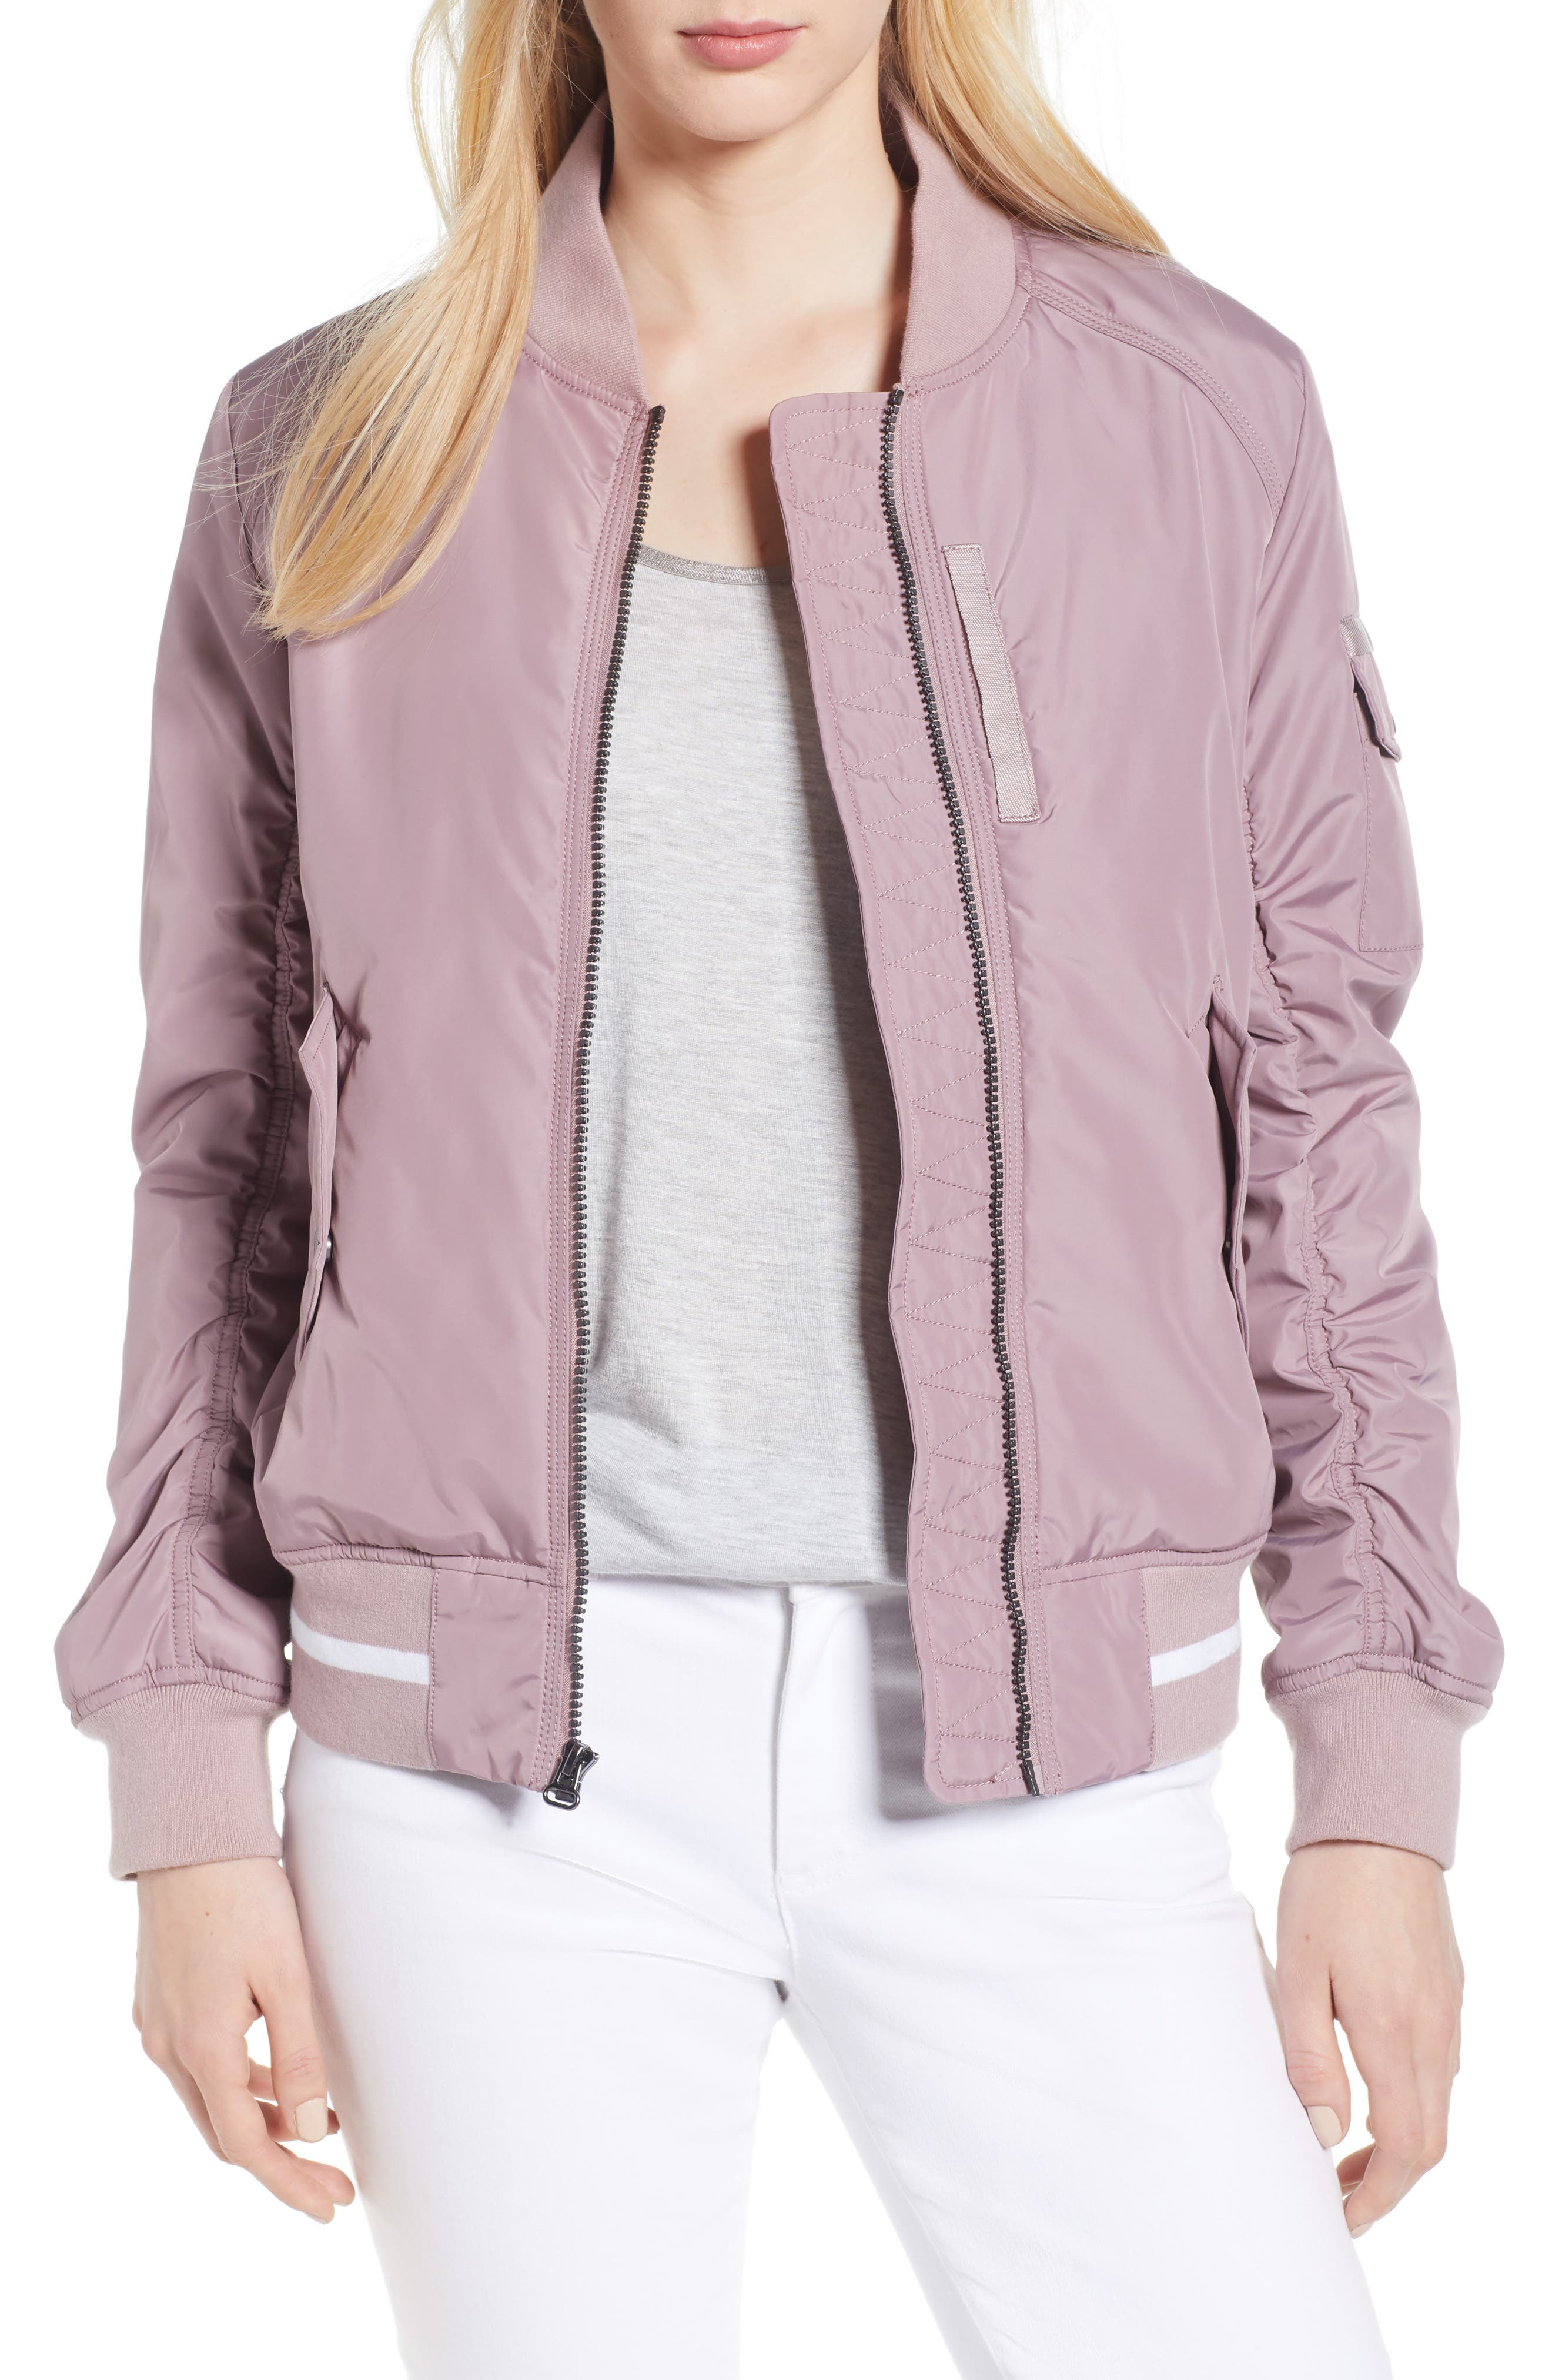 Foster Nylon Twill Bomber Jacket,                         Main,                         color,